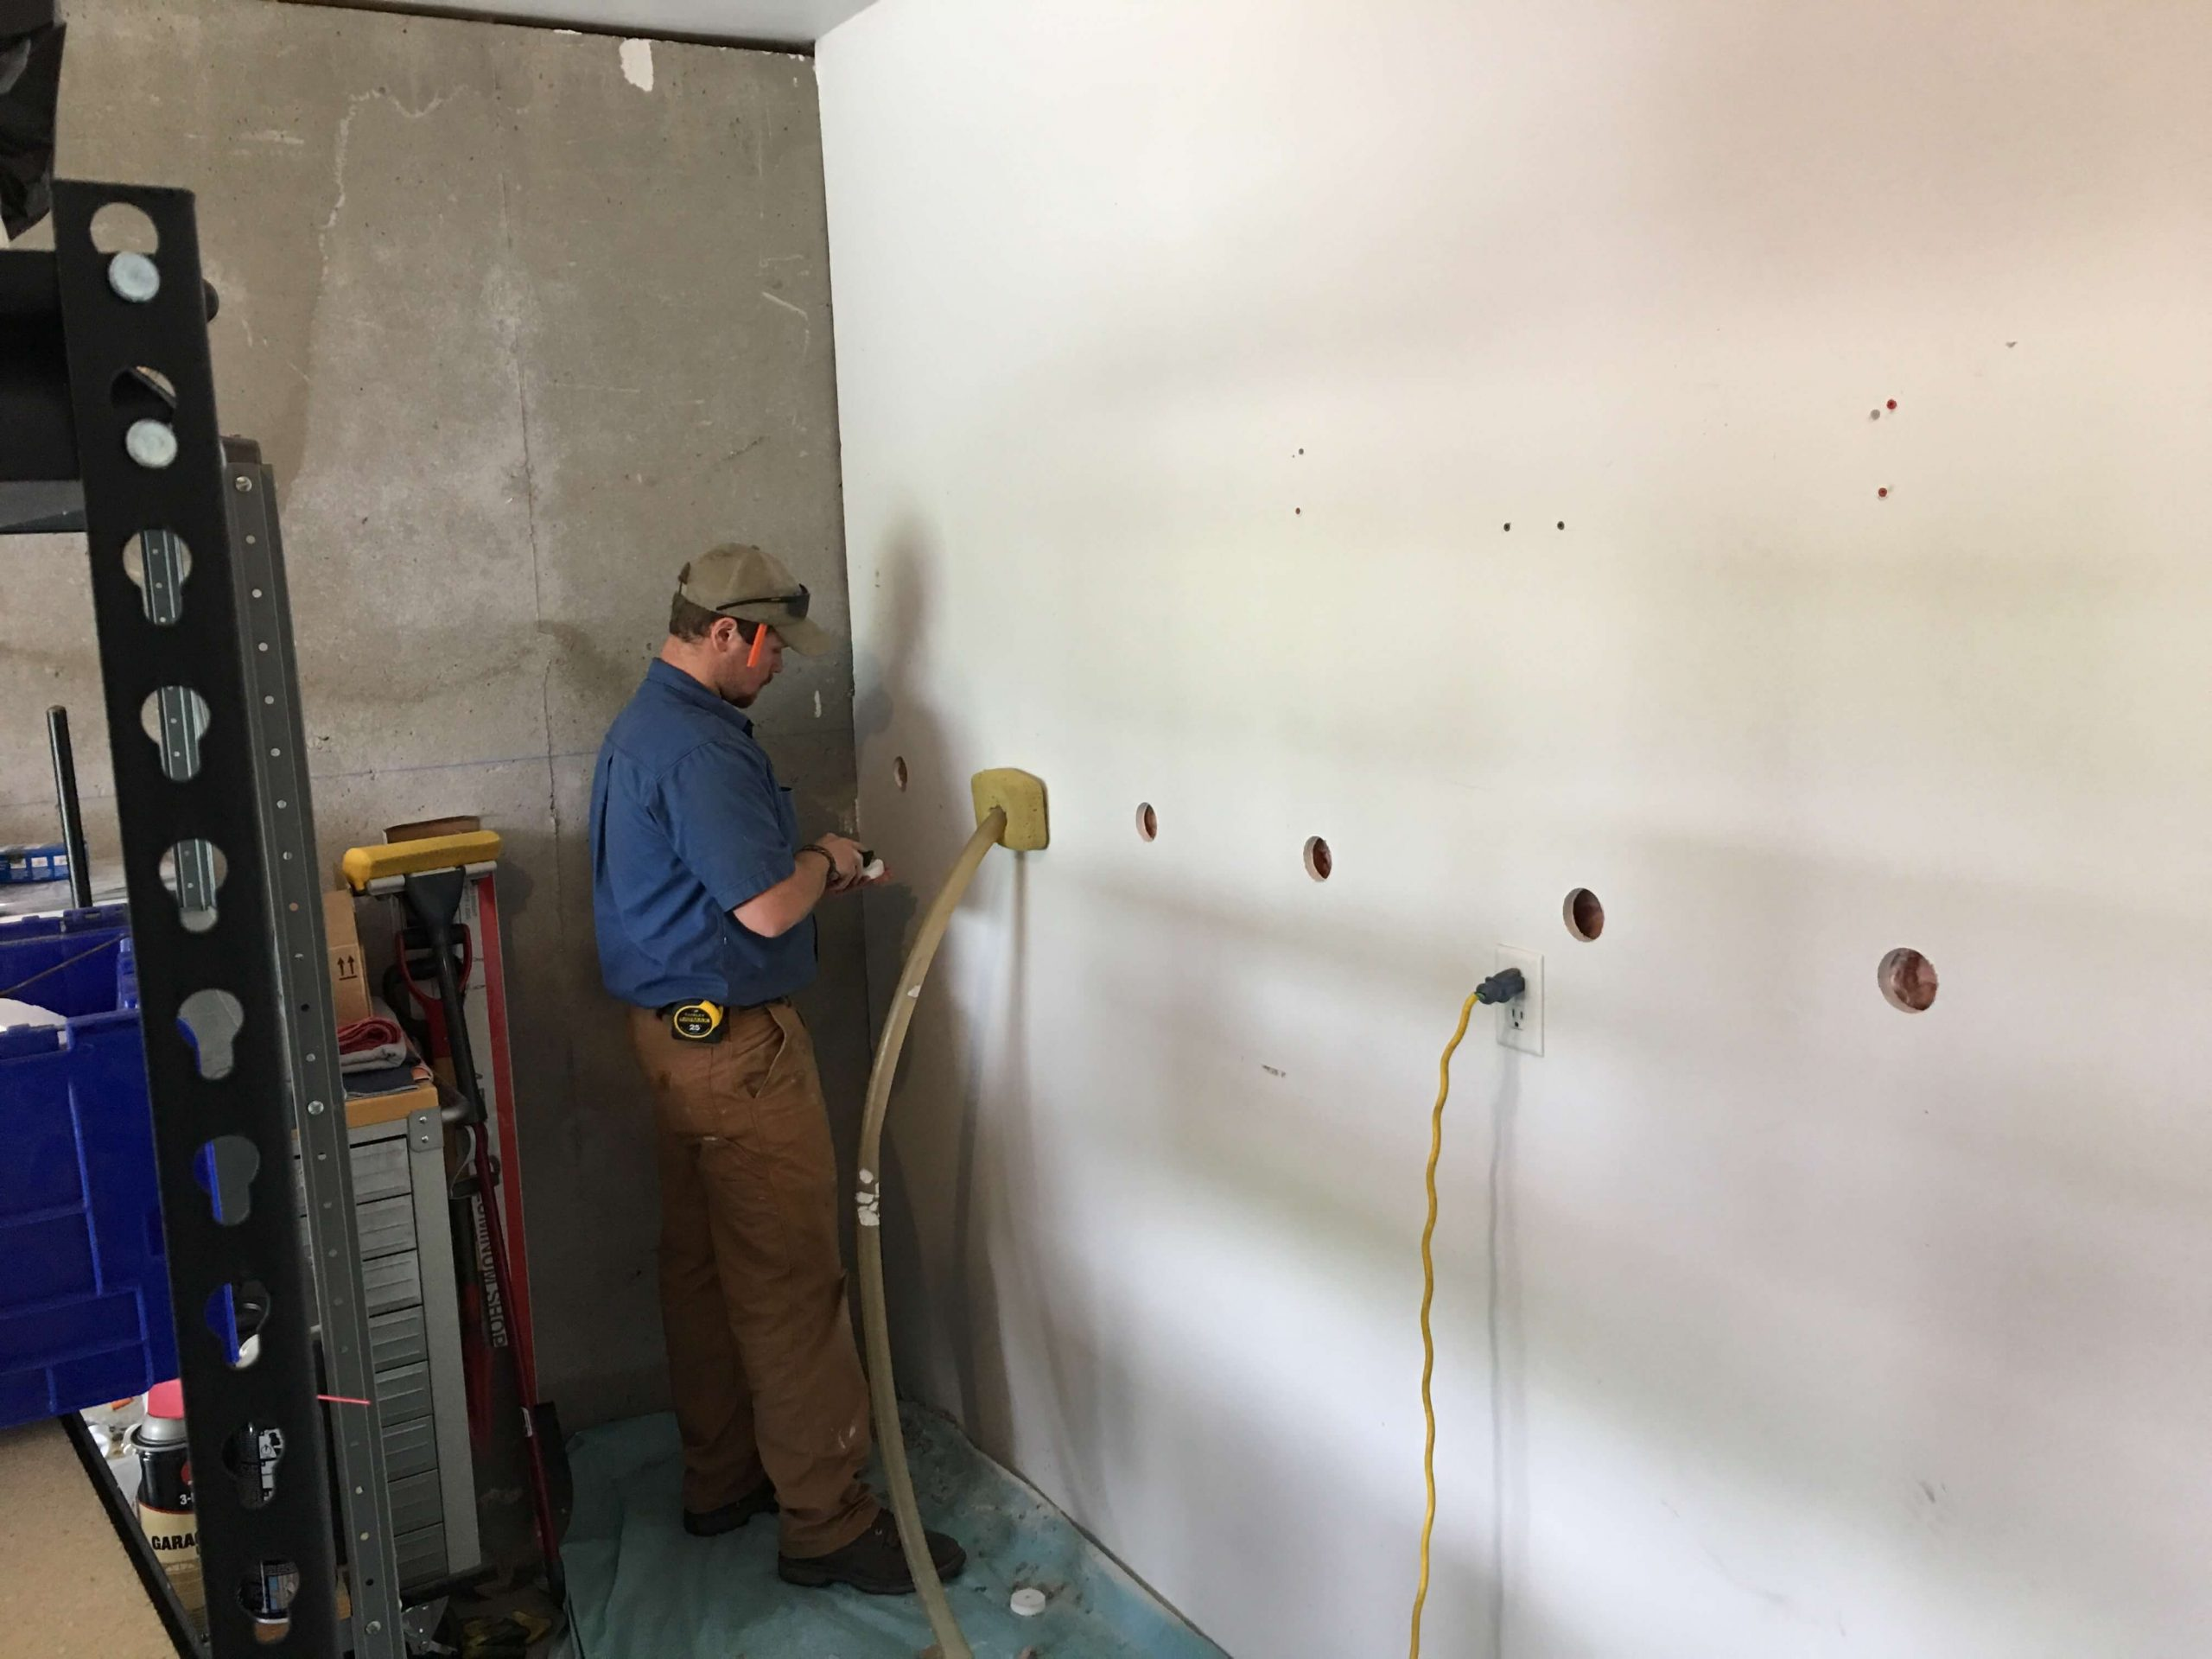 man drilling holes on the wall